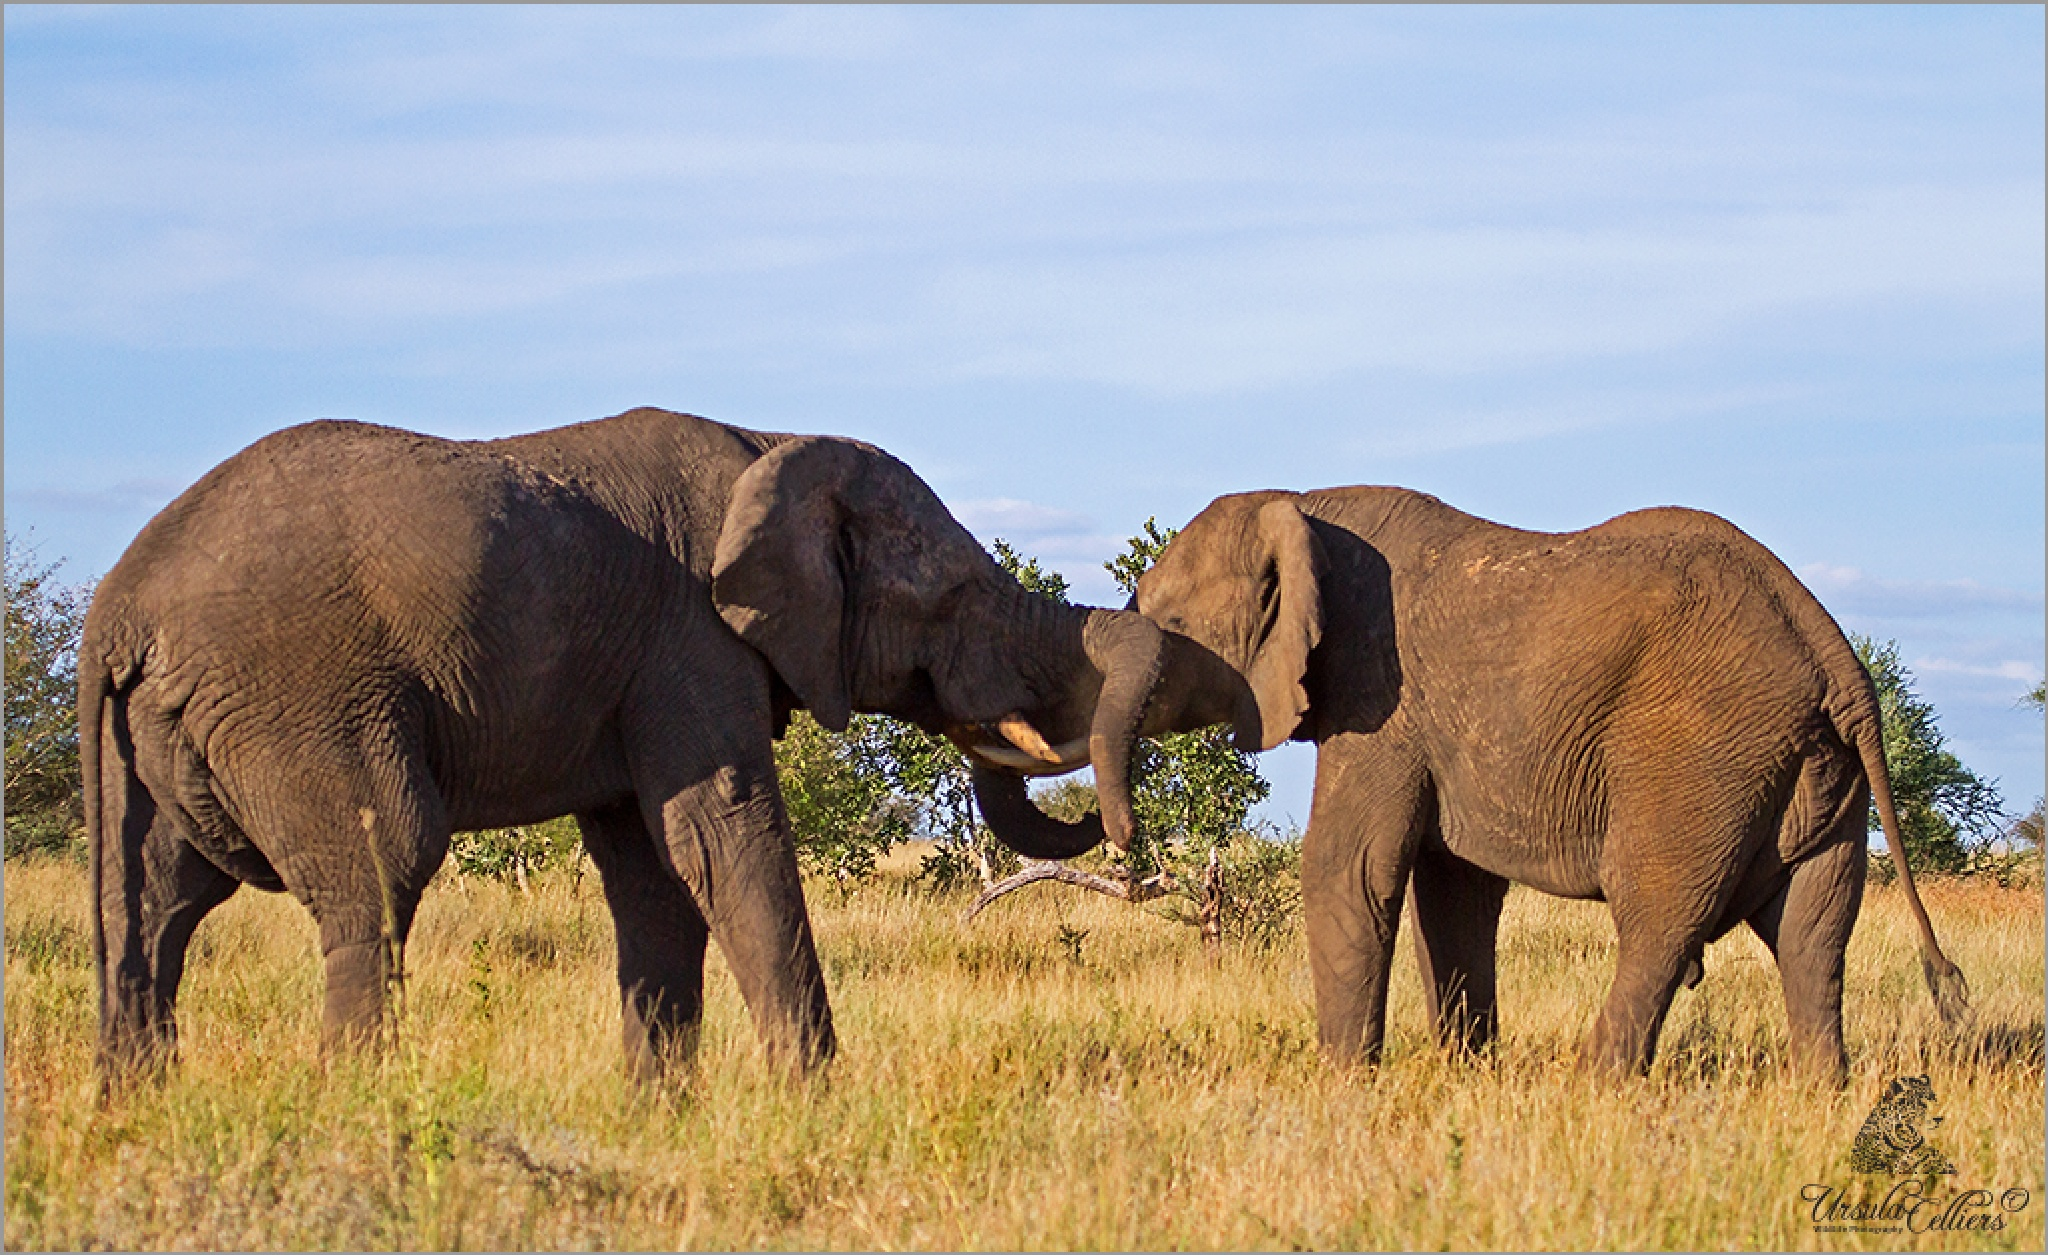 Playfull Elephants by Ursula Celliers - Wildlife Photography